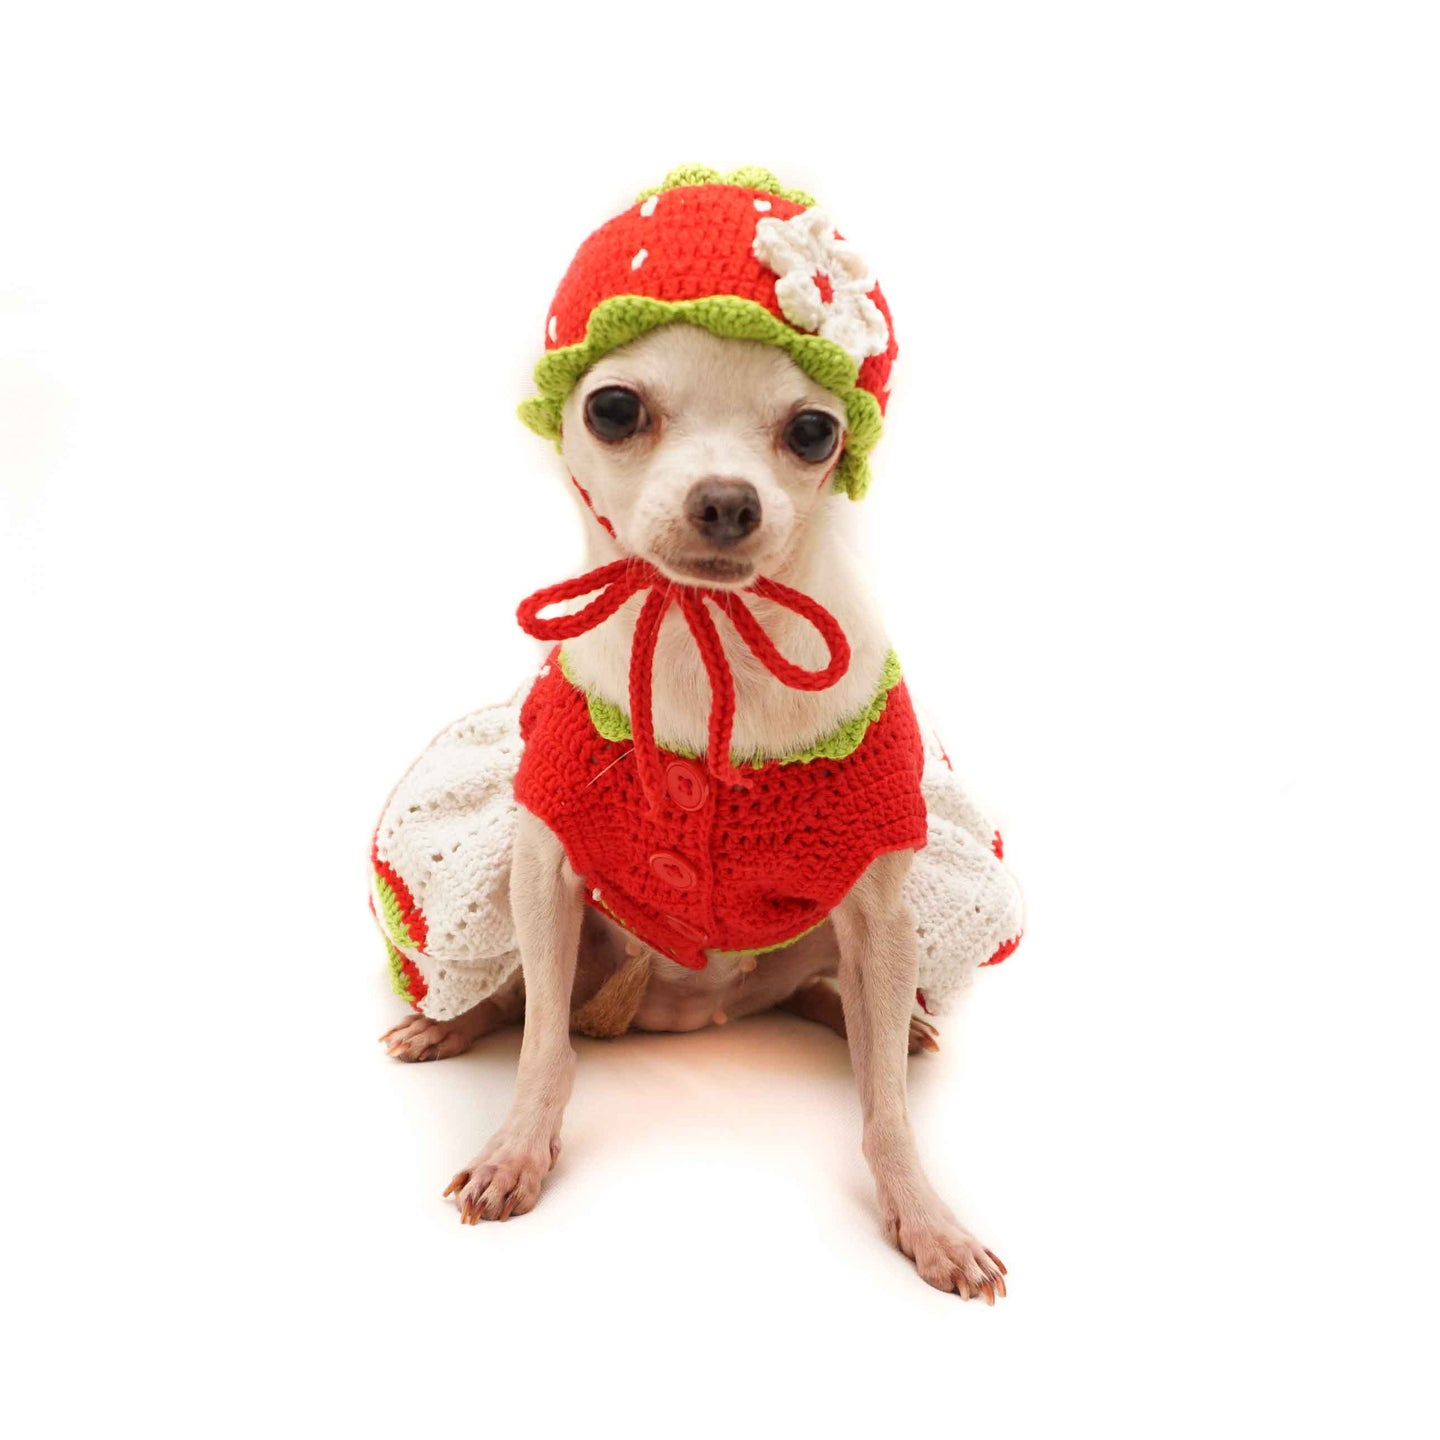 Sweet Strawberry Outfit with Strawberry Hat